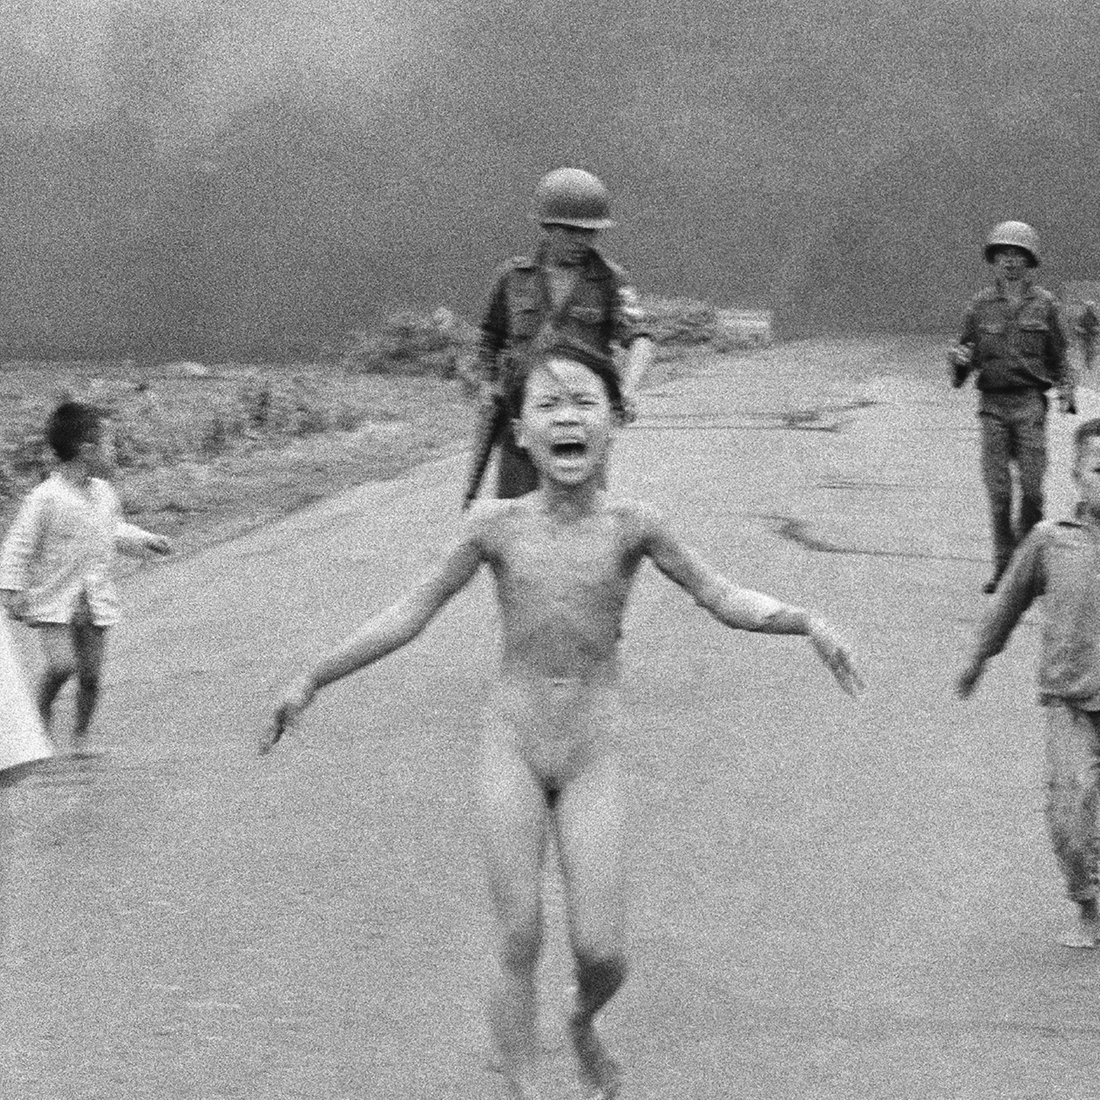 """FILE - In this June 8, 1972 file photo taken by Huynh Cong """"Nick' Ut, South Vietnamese forces follow terrified children, including 9-year-old Kim Phuc, center, as they run down Route 1 near Trang Bang after an aerial napalm attack on suspected Viet Cong hiding places. After making the photo, he set aside his camera, gave the badly burned girl water, poured more on her wounds, then loaded her and others into his AP van to take them to a hospital. When doctors refused to admit her, saying she was too badly burned to be saved, he angrily flashed his press pass. The next day, he told them, pictures of her would be displayed all over the world, along with an explanation of how the hospital refused to help. (AP Photo/Nick Ut, File) 